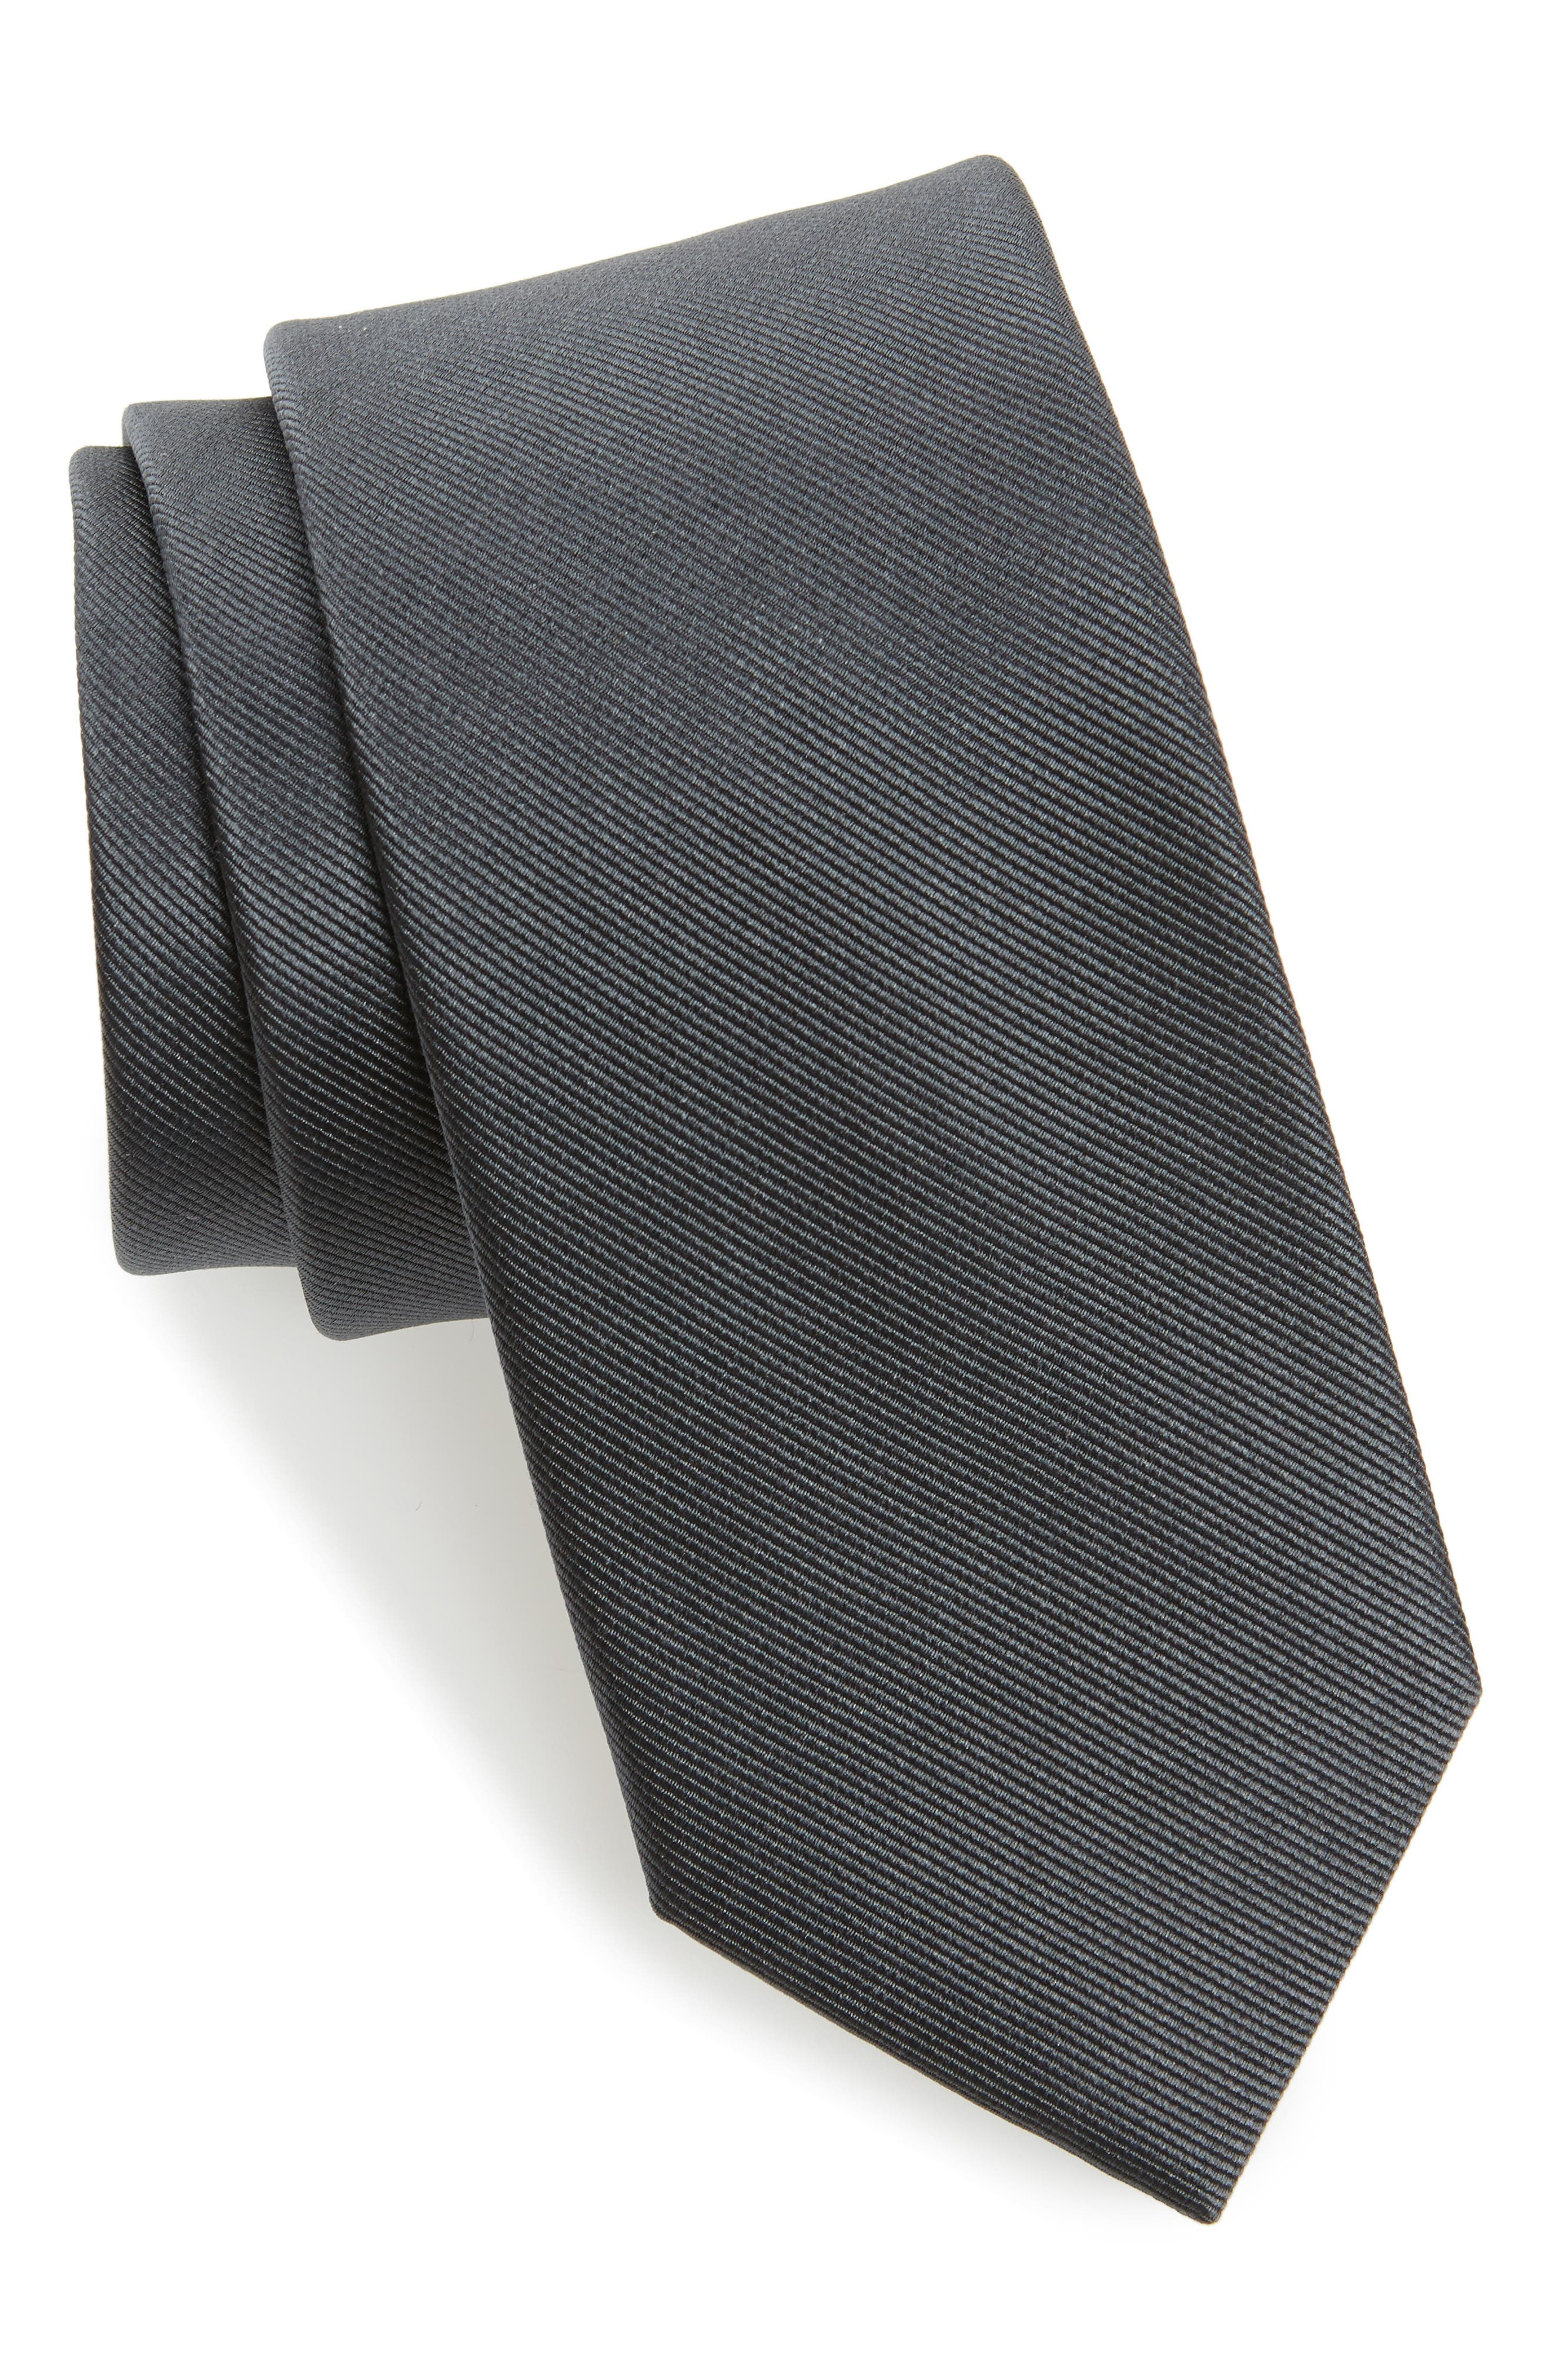 Alternate Image 1 Selected - The Tie Bar Grosgrain Silk Tie